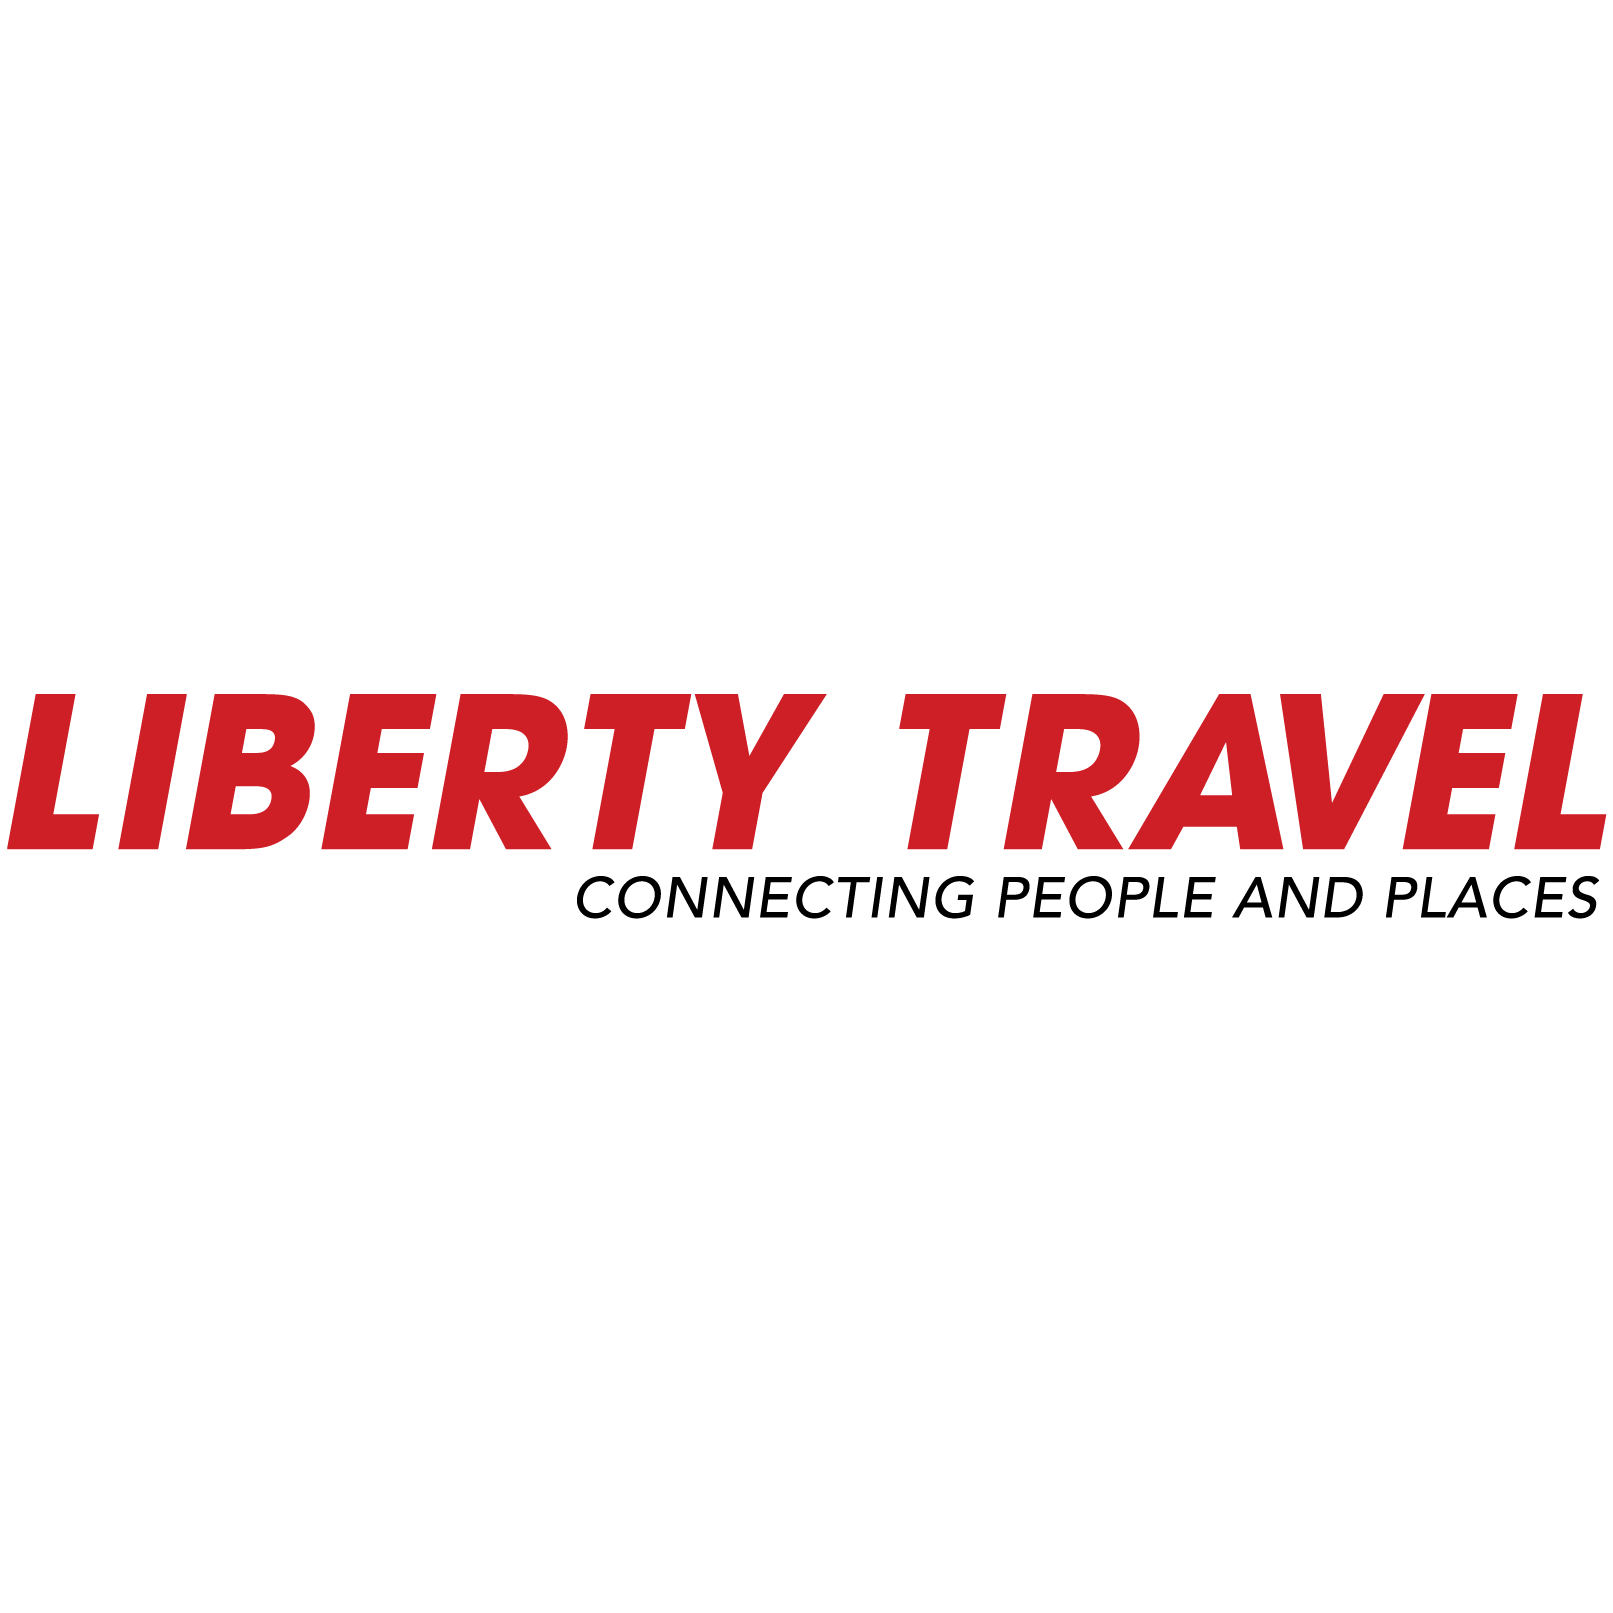 Liberty Travel image 1